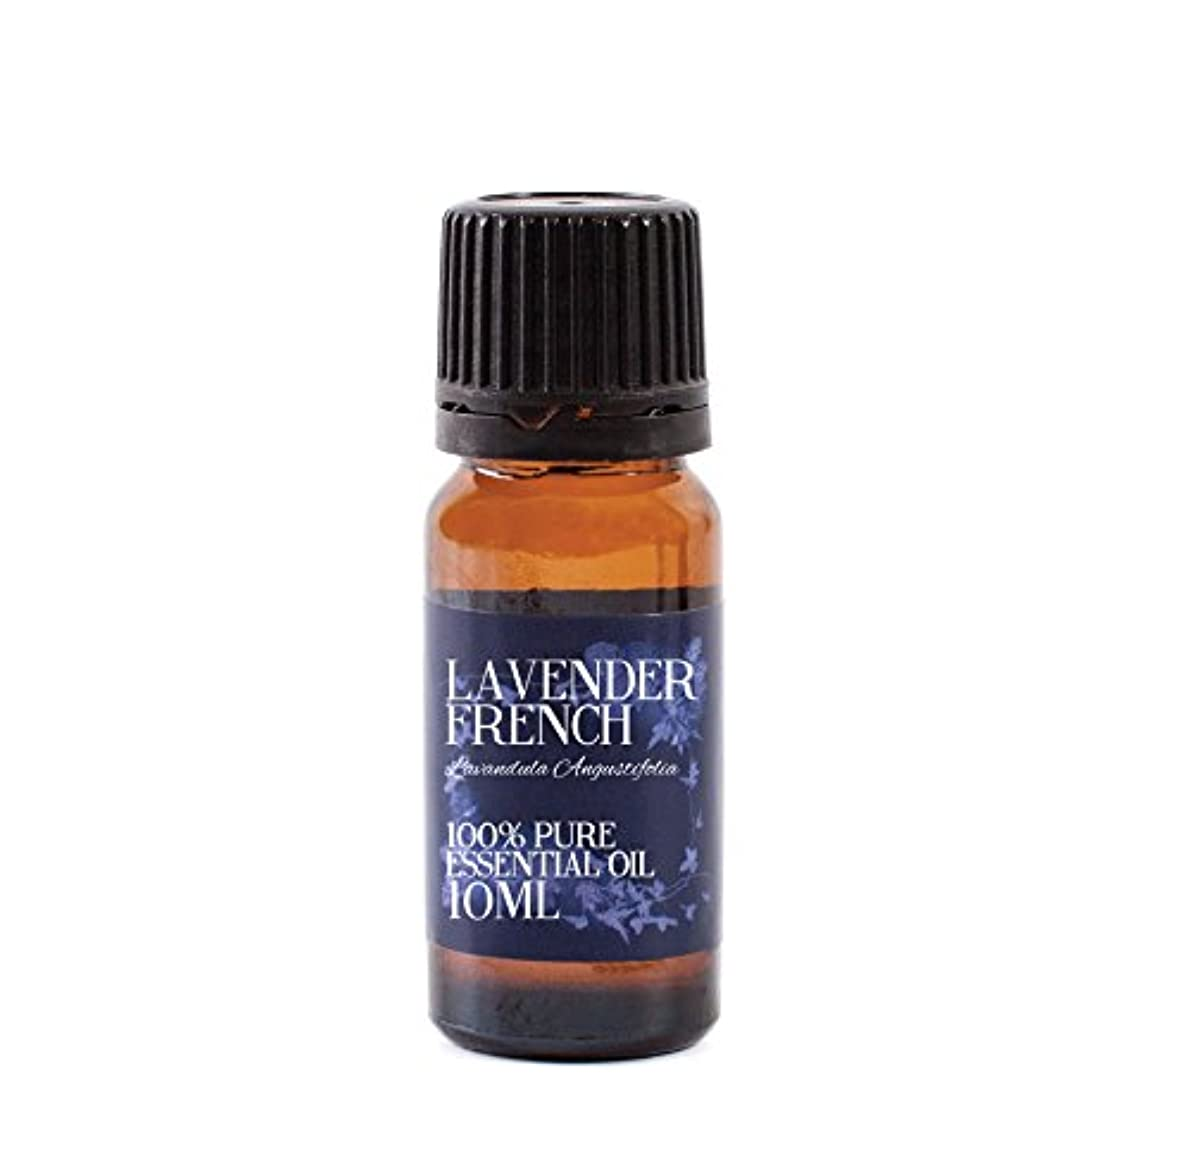 臭い虫を数える介入するMystic Moments | Lavender French Essential Oil - 10ml - 100% Pure